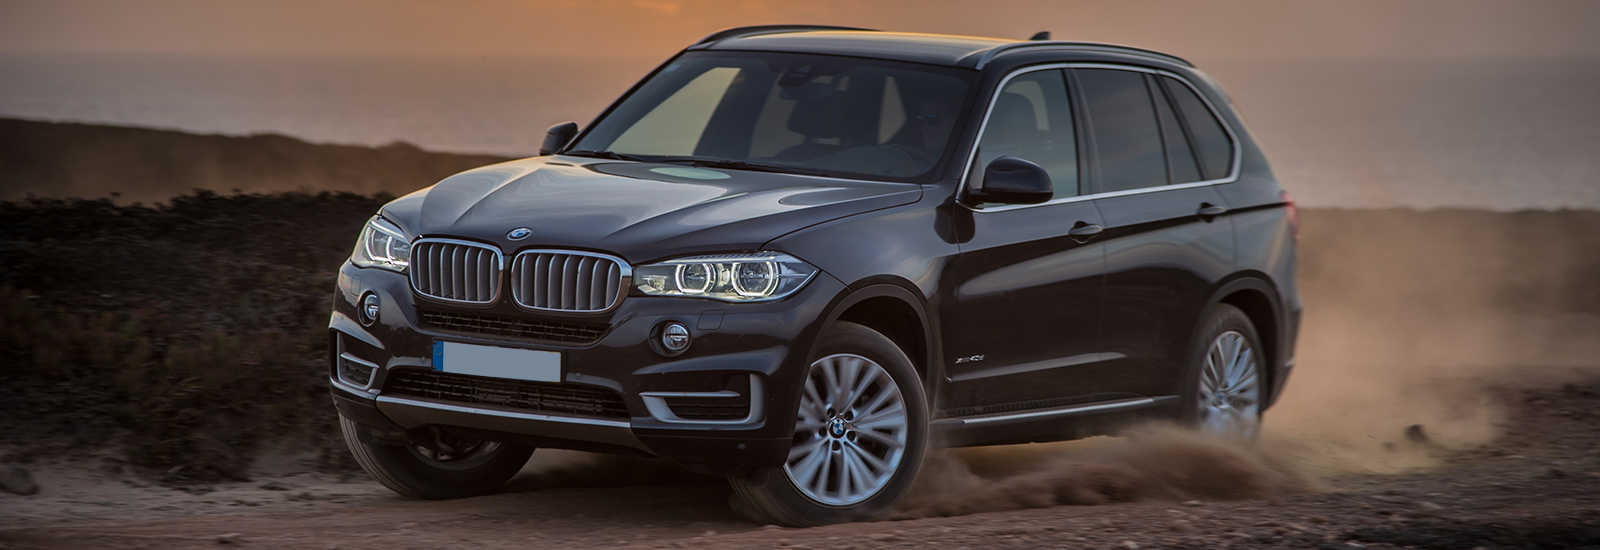 2018 bmw large suv. contemporary suv the new x7 will draw influence from the x5 shown here inside 2018 bmw large suv t